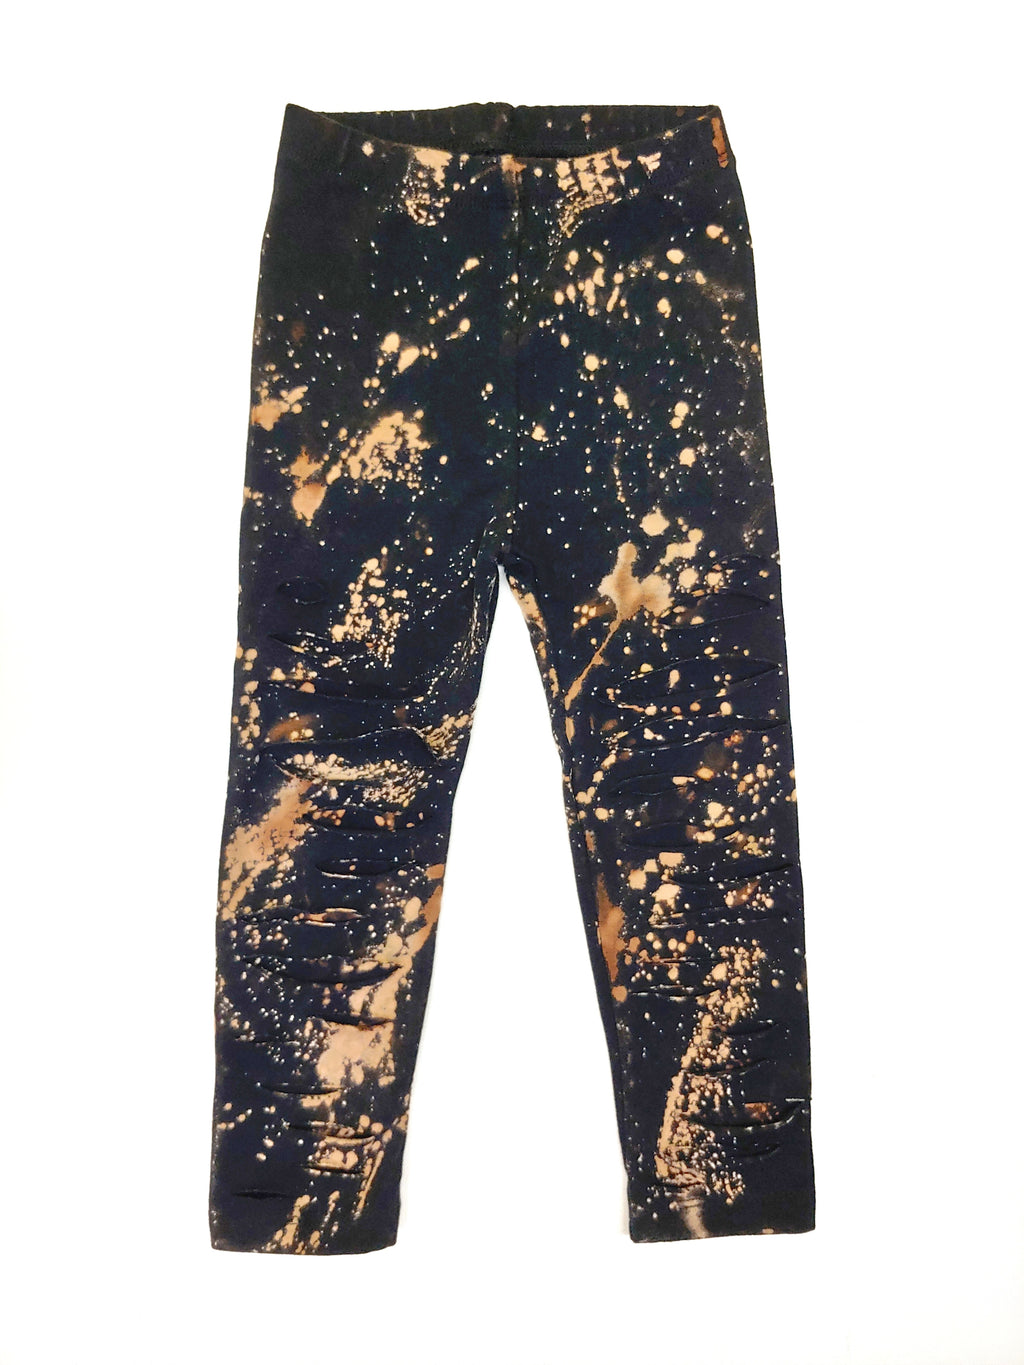 Acid Splashed Distressed Leggings